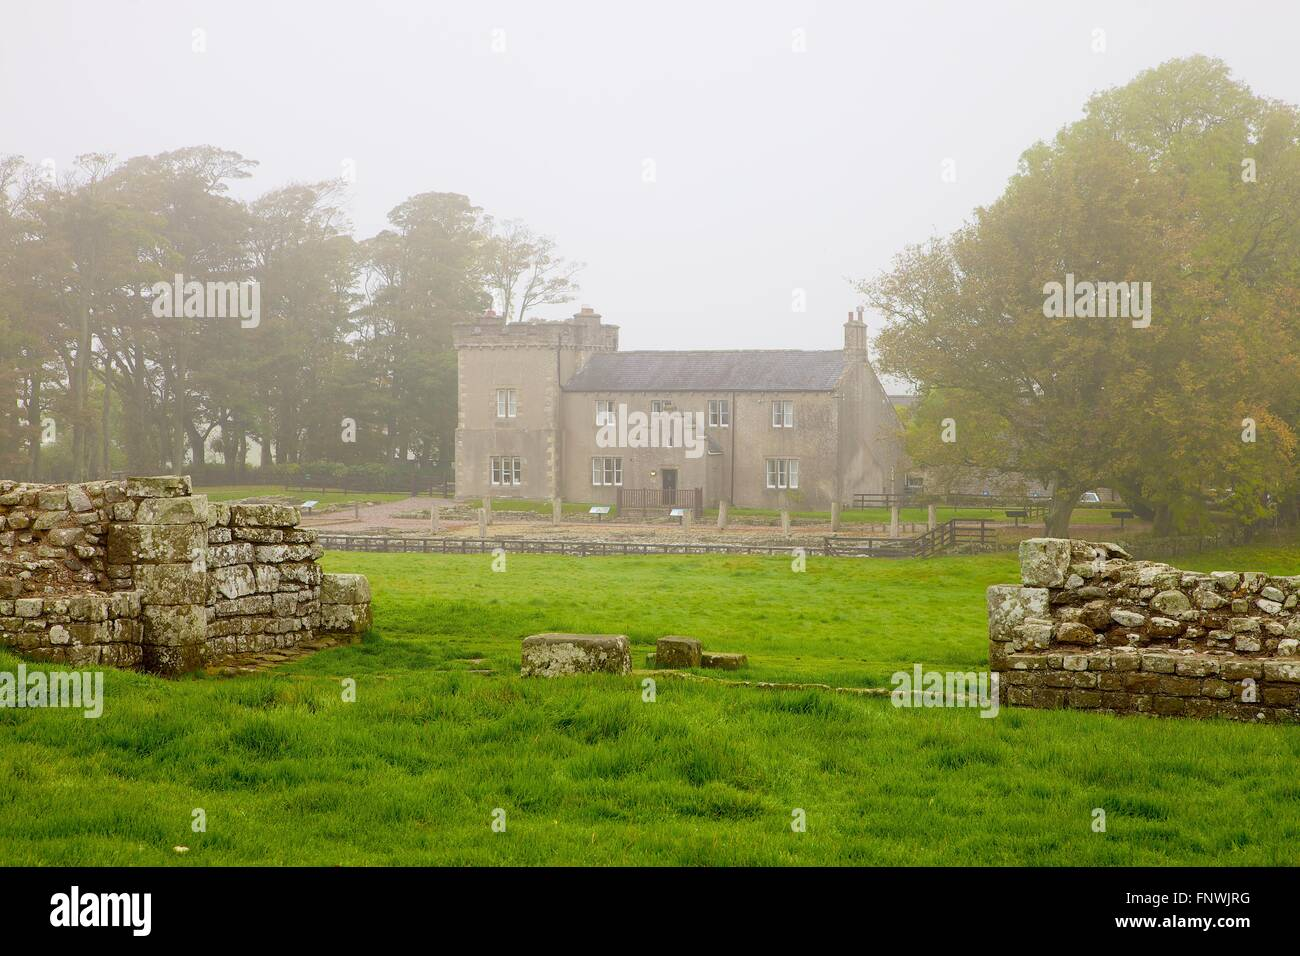 Hadrian's Wall. Fog enveloped. Birdoswald Roman Fort, Cumbria, England, United Kingdom. - Stock Image